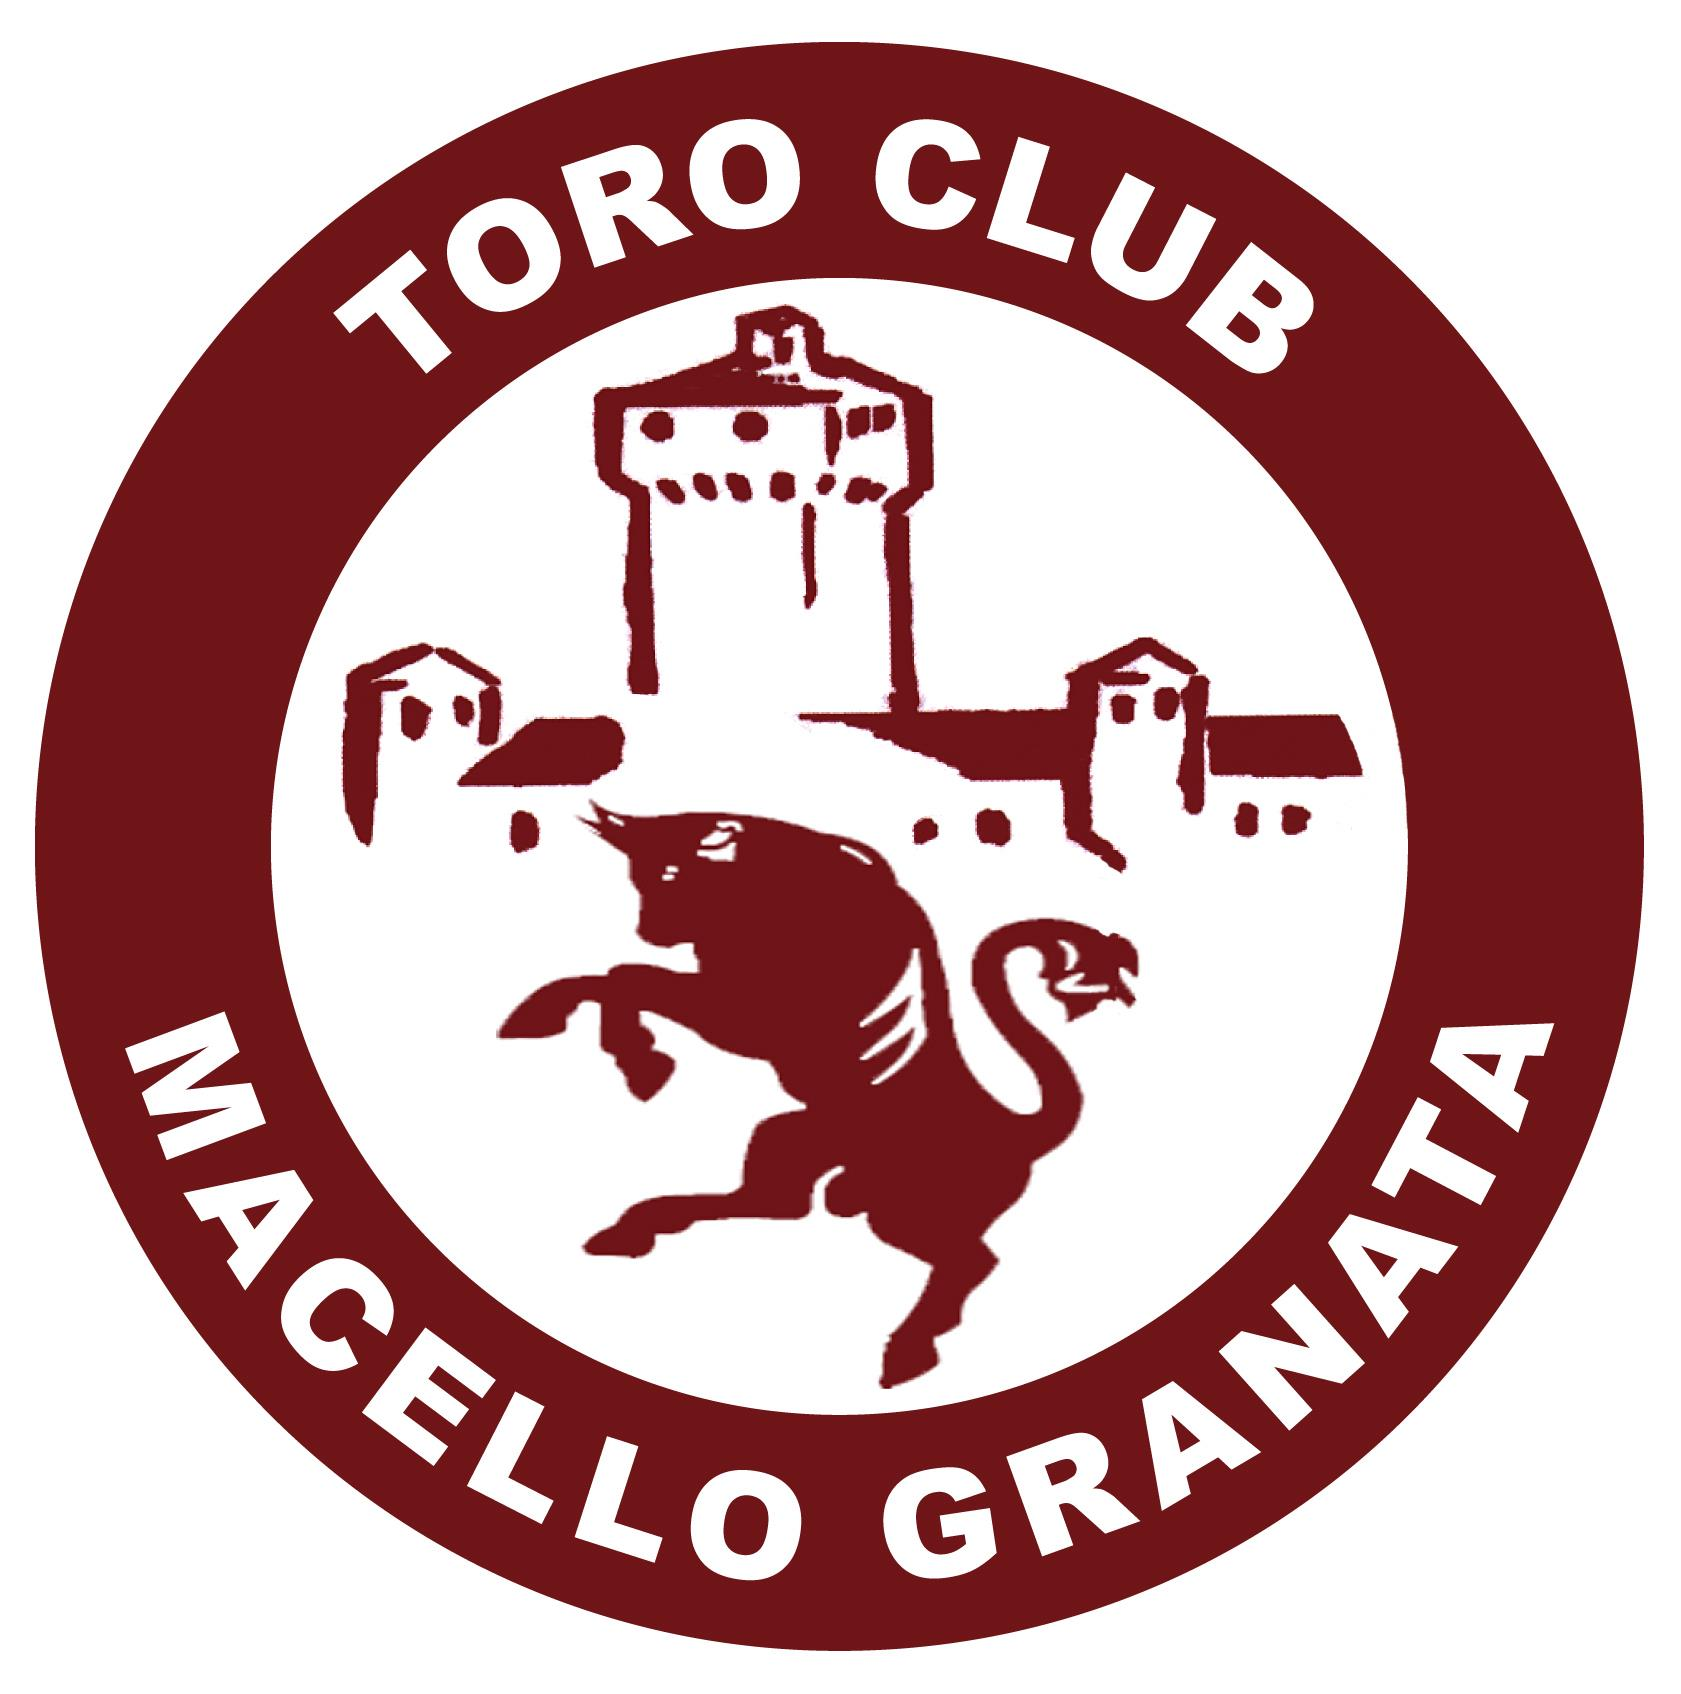 Toro Club Macello